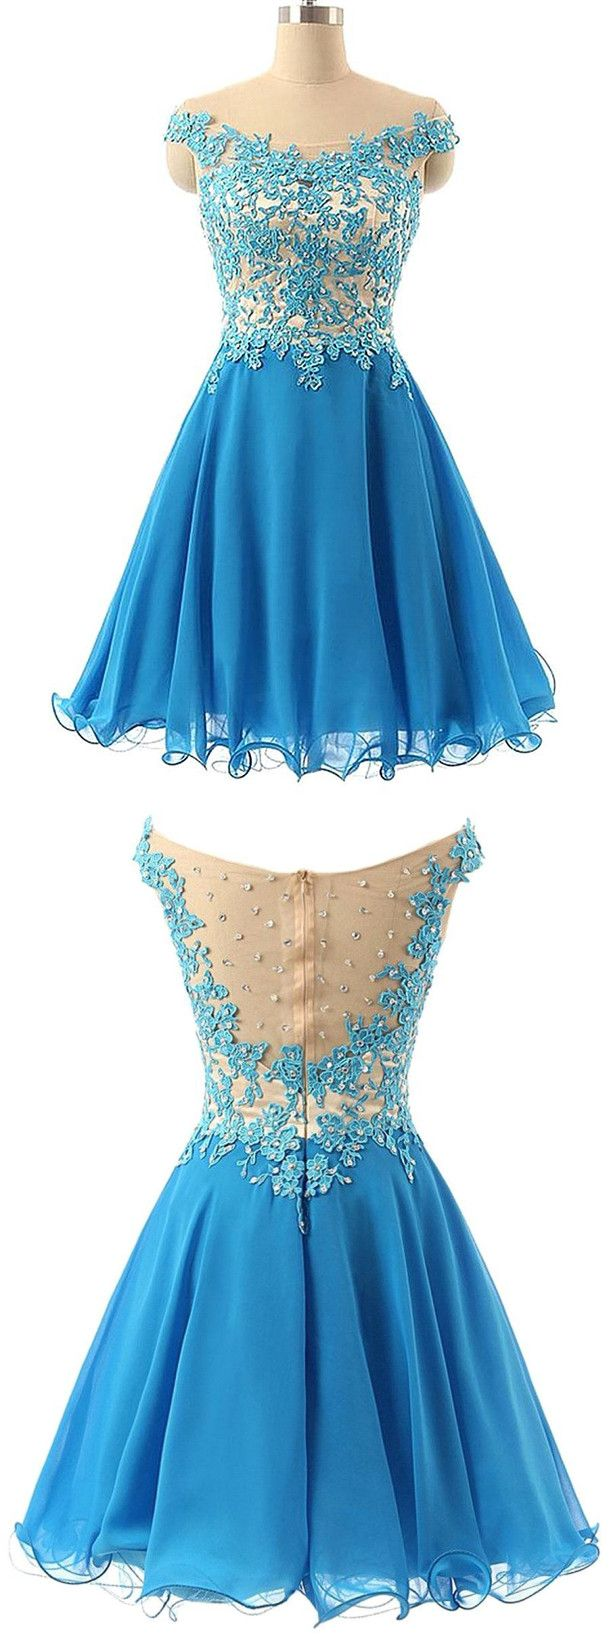 134 best Homecoming! images on Pinterest | Prom dresses, Formal ...